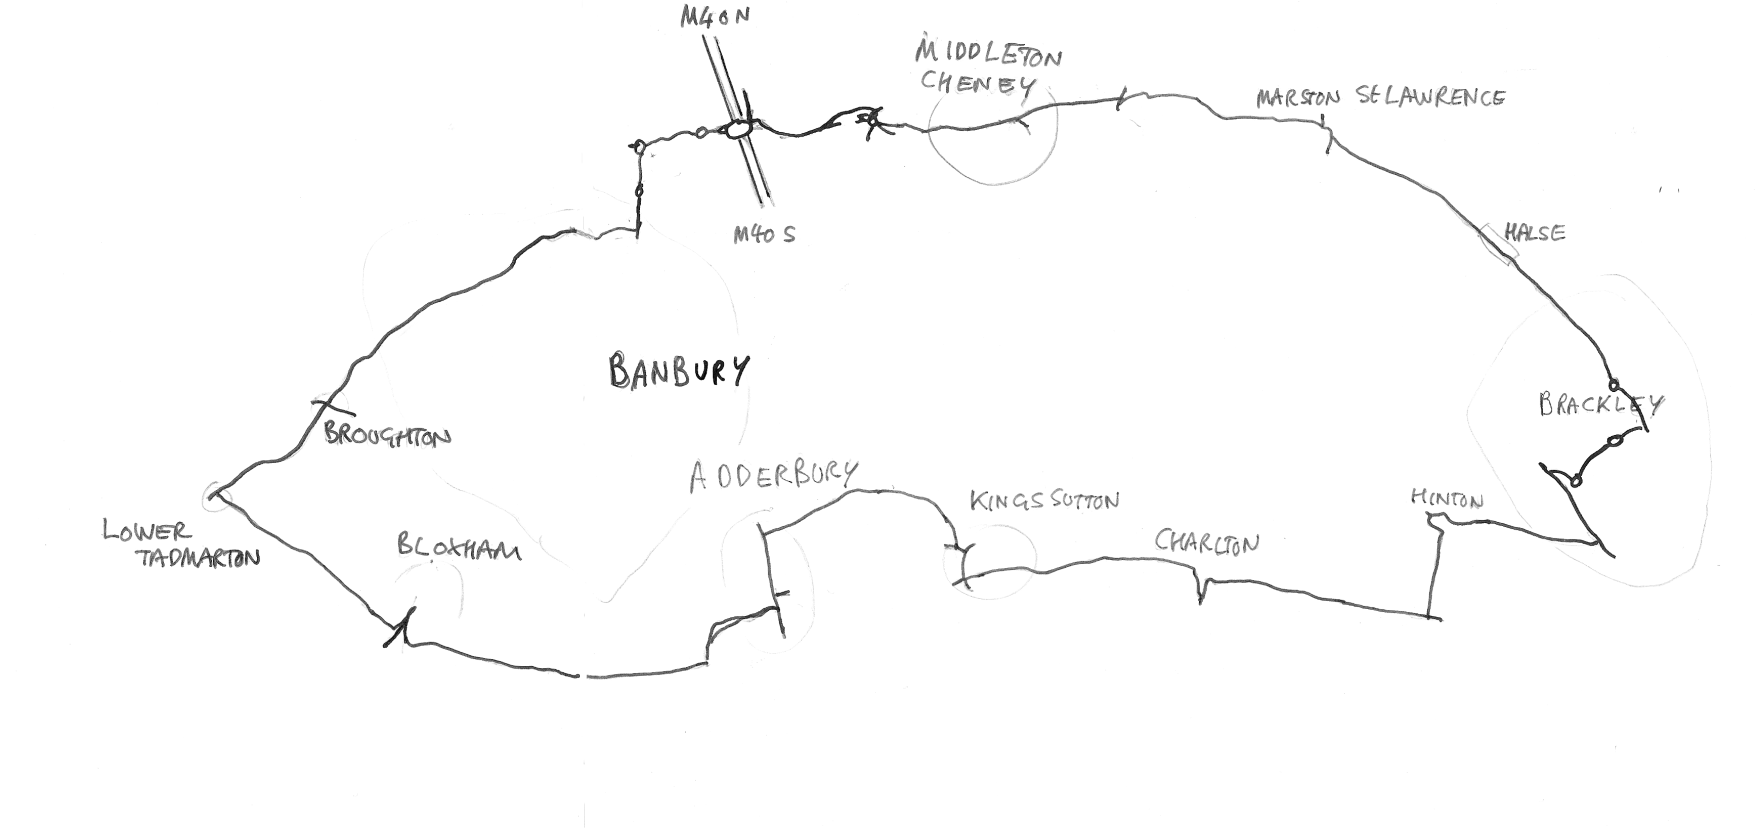 Brackley to Bloxham route map